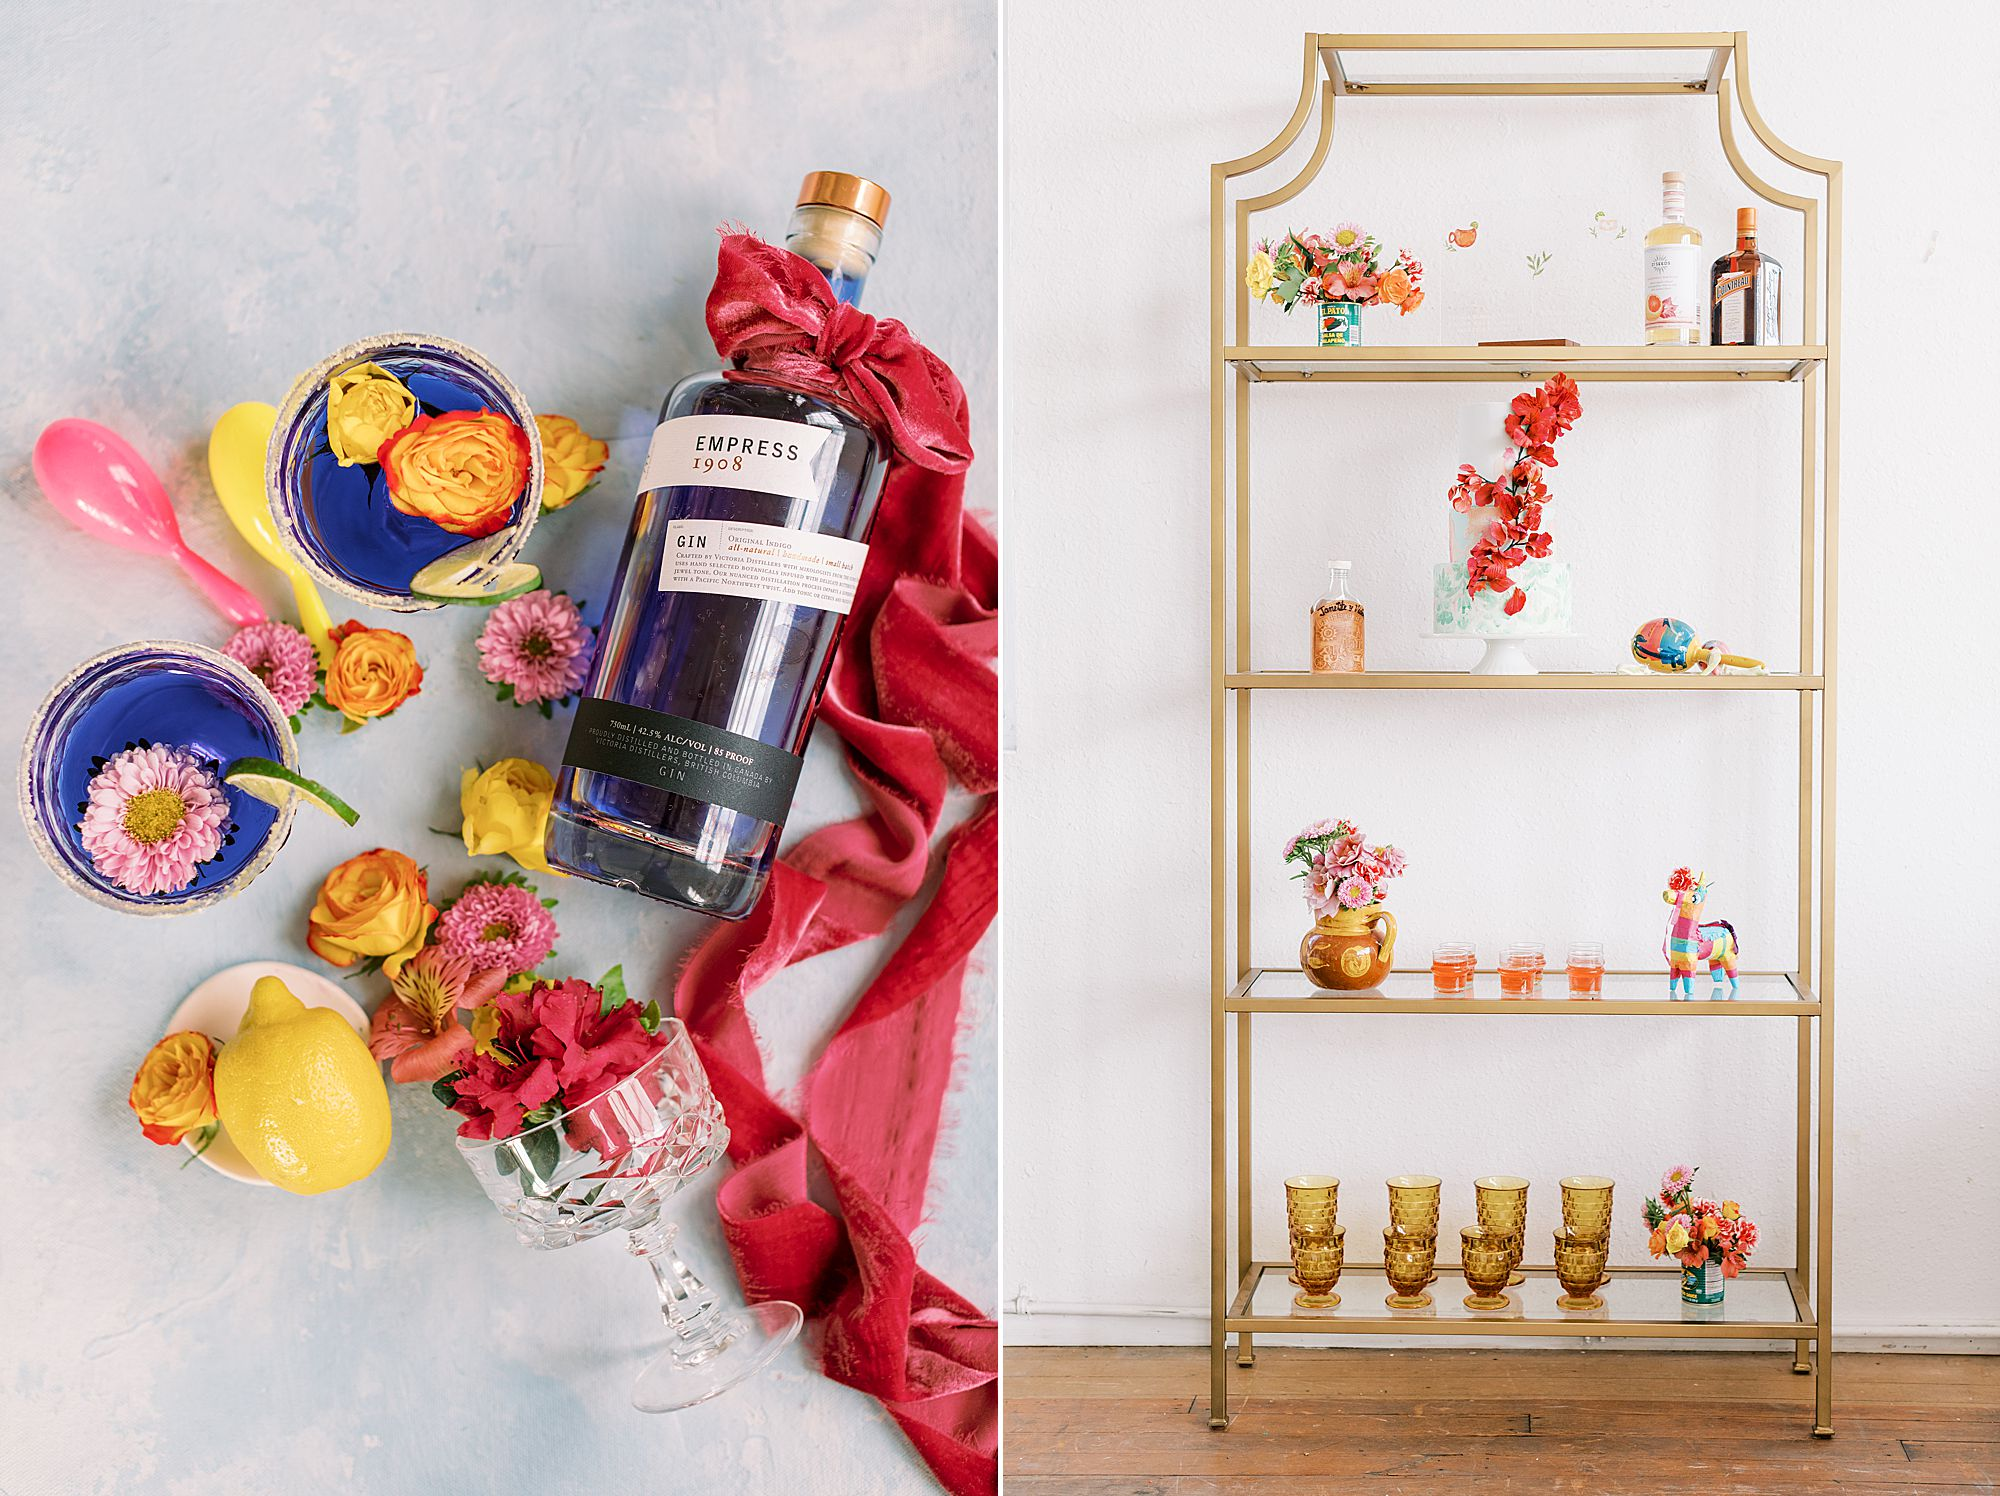 Cinco De Mayo Inspiration for Your FIesta - Party Crush Studio and Ashley Baumgartner_0002.jpg